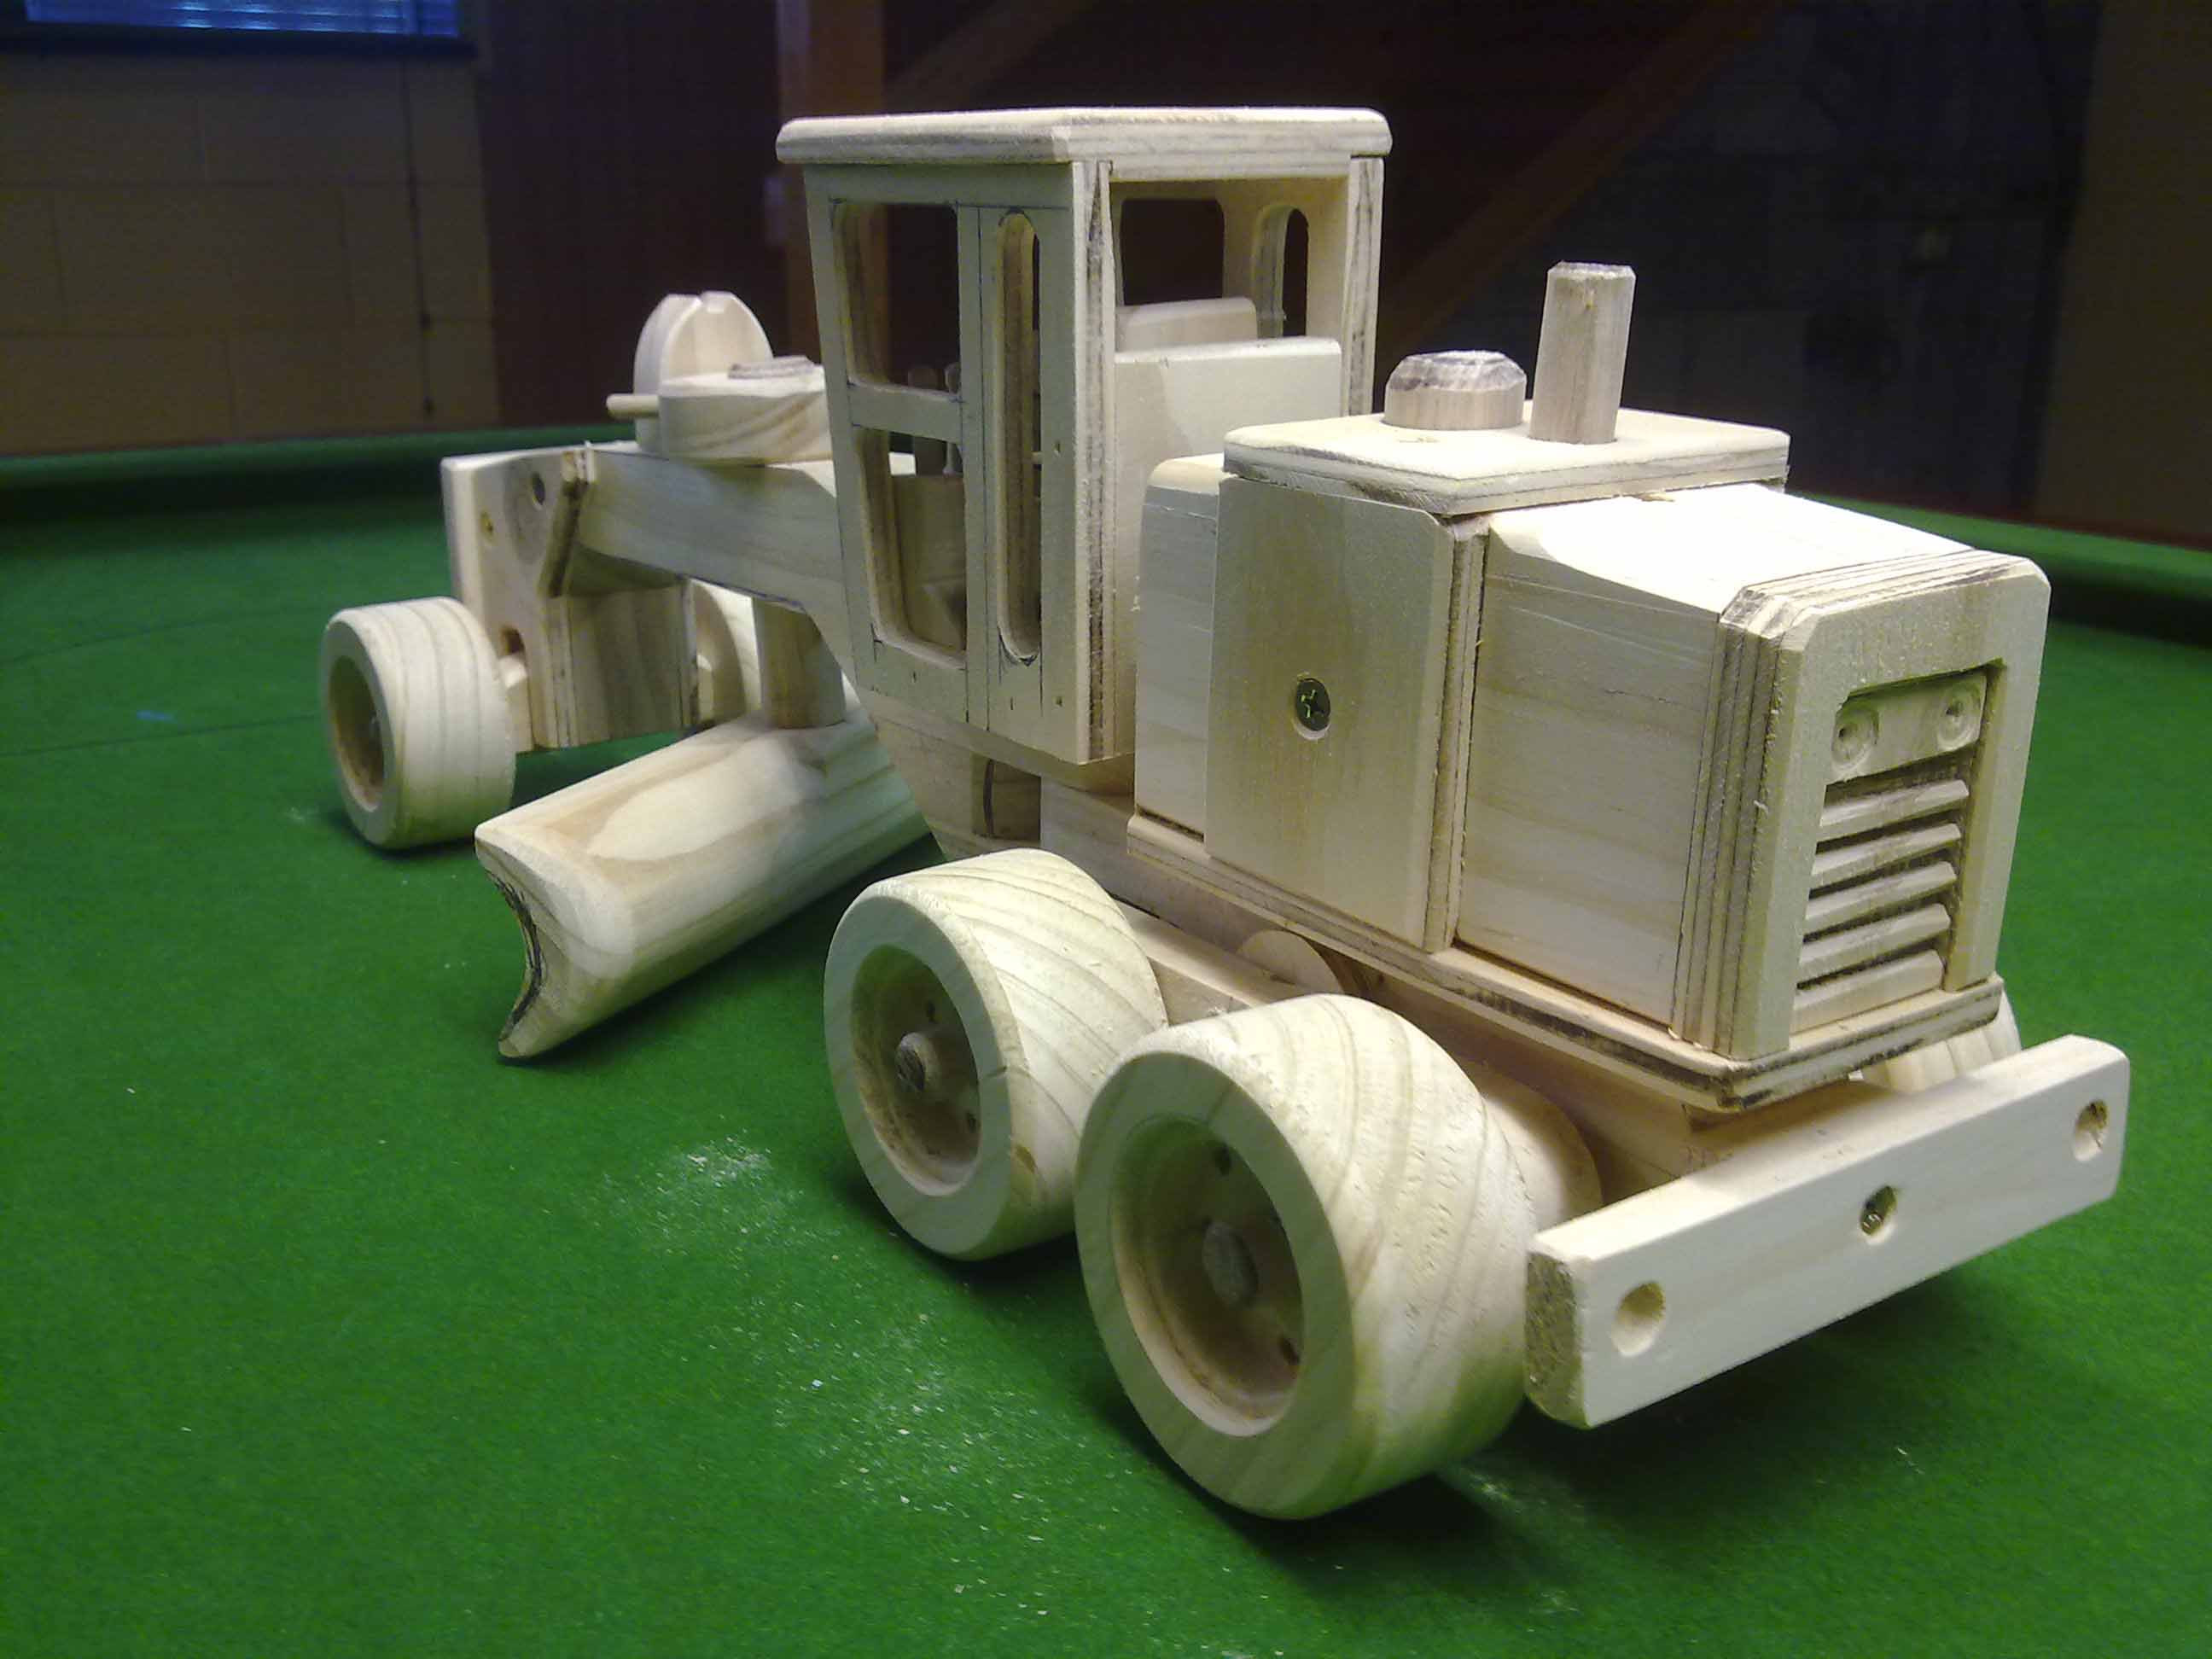 Rear view of wooden toy grader